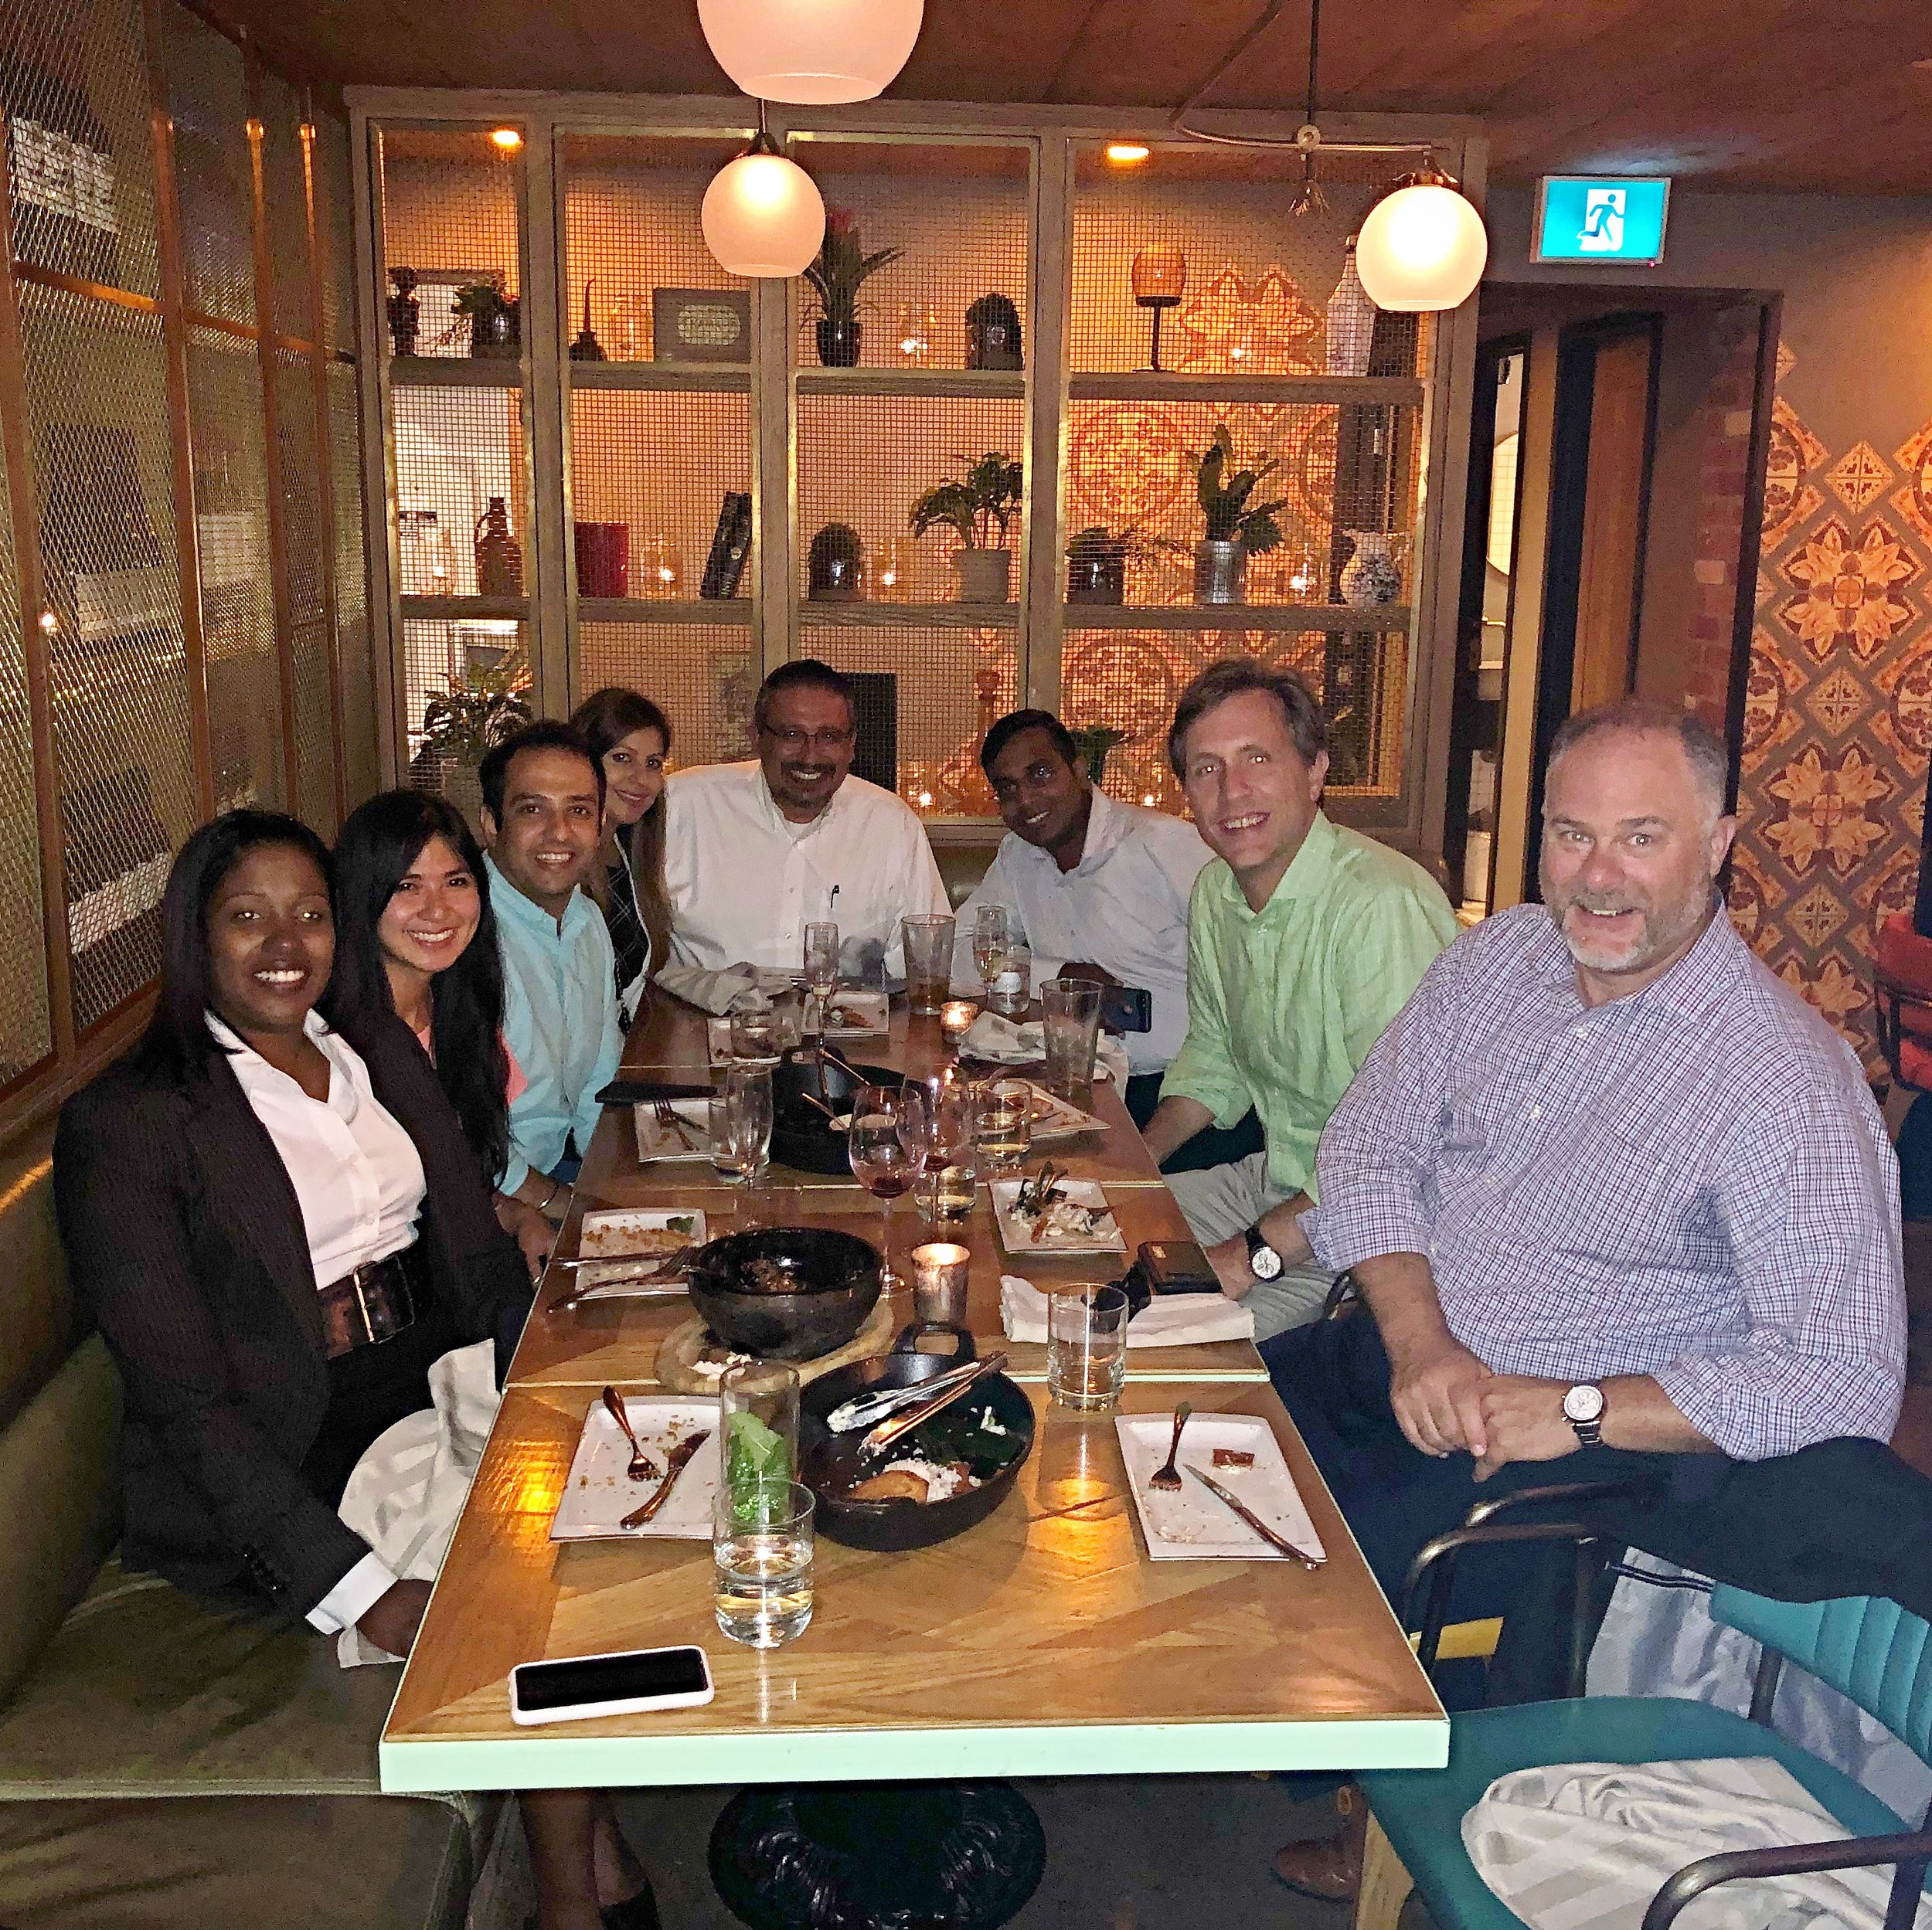 Team Dinner at Baro in Toronto, Canada